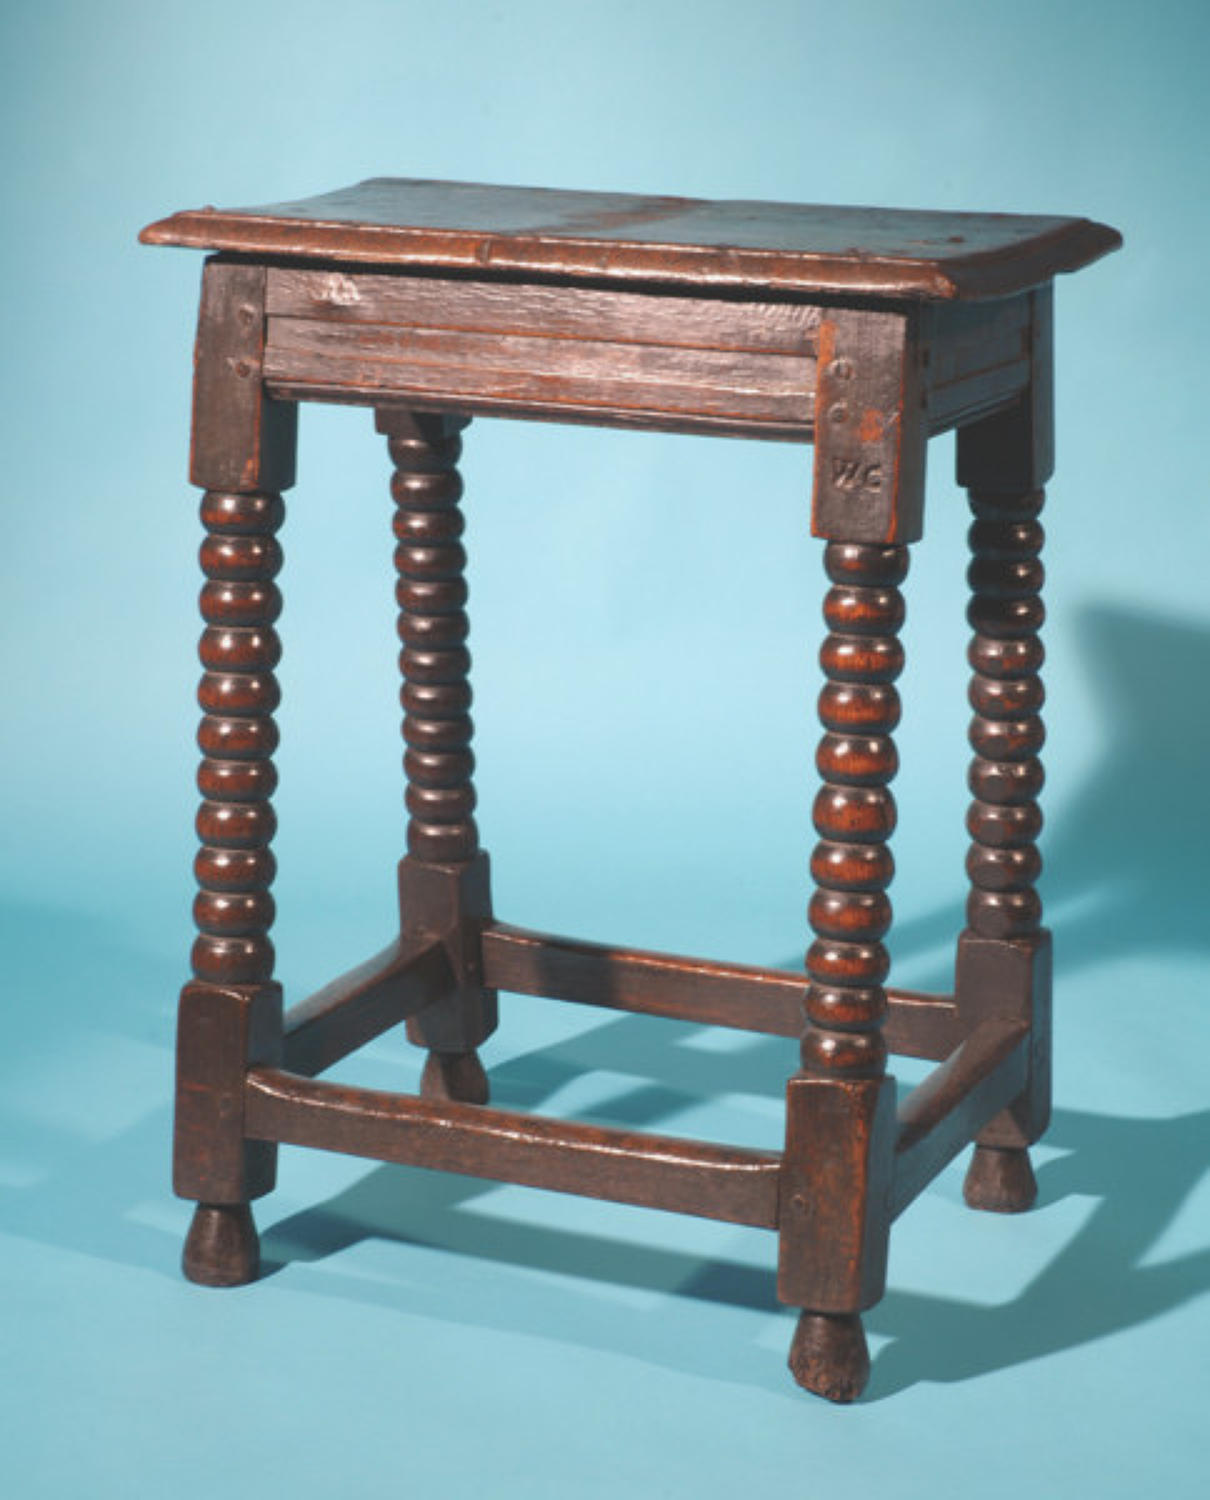 17thc Oak Joint Stool. English  C1660 - 70